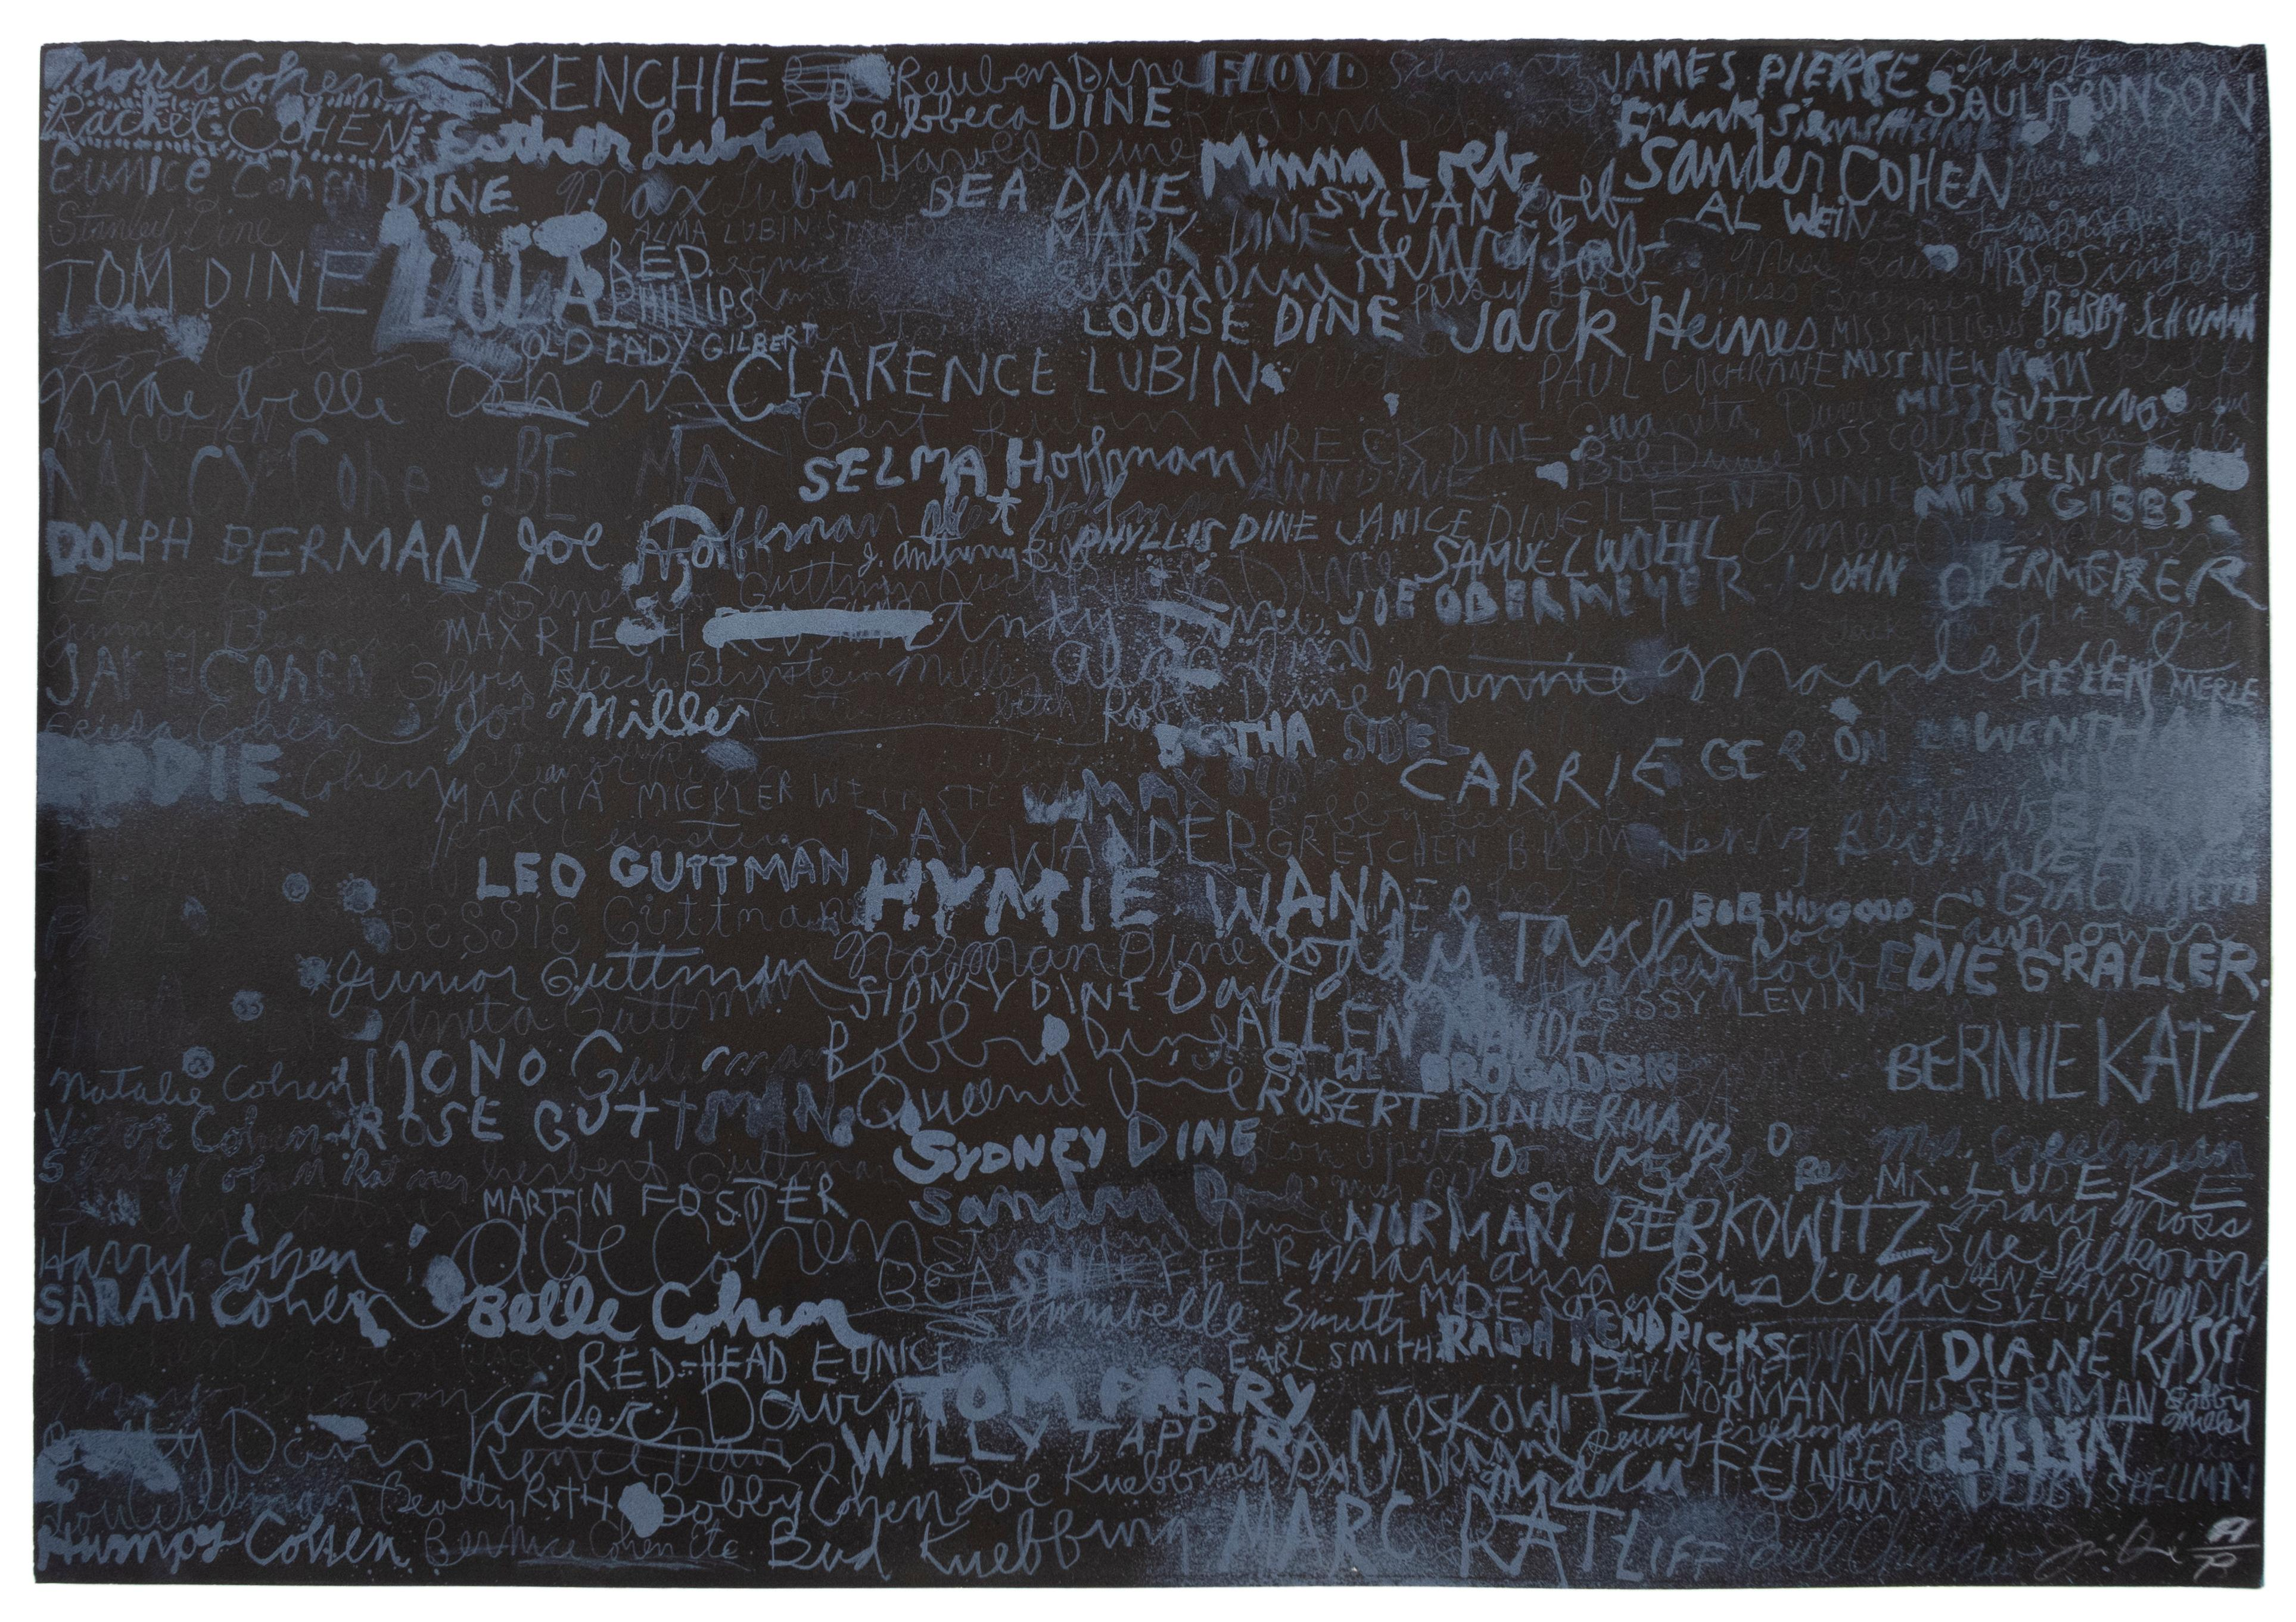 Cincinnati II: Large Scale Black and White abstract text drawing by Jim Dine